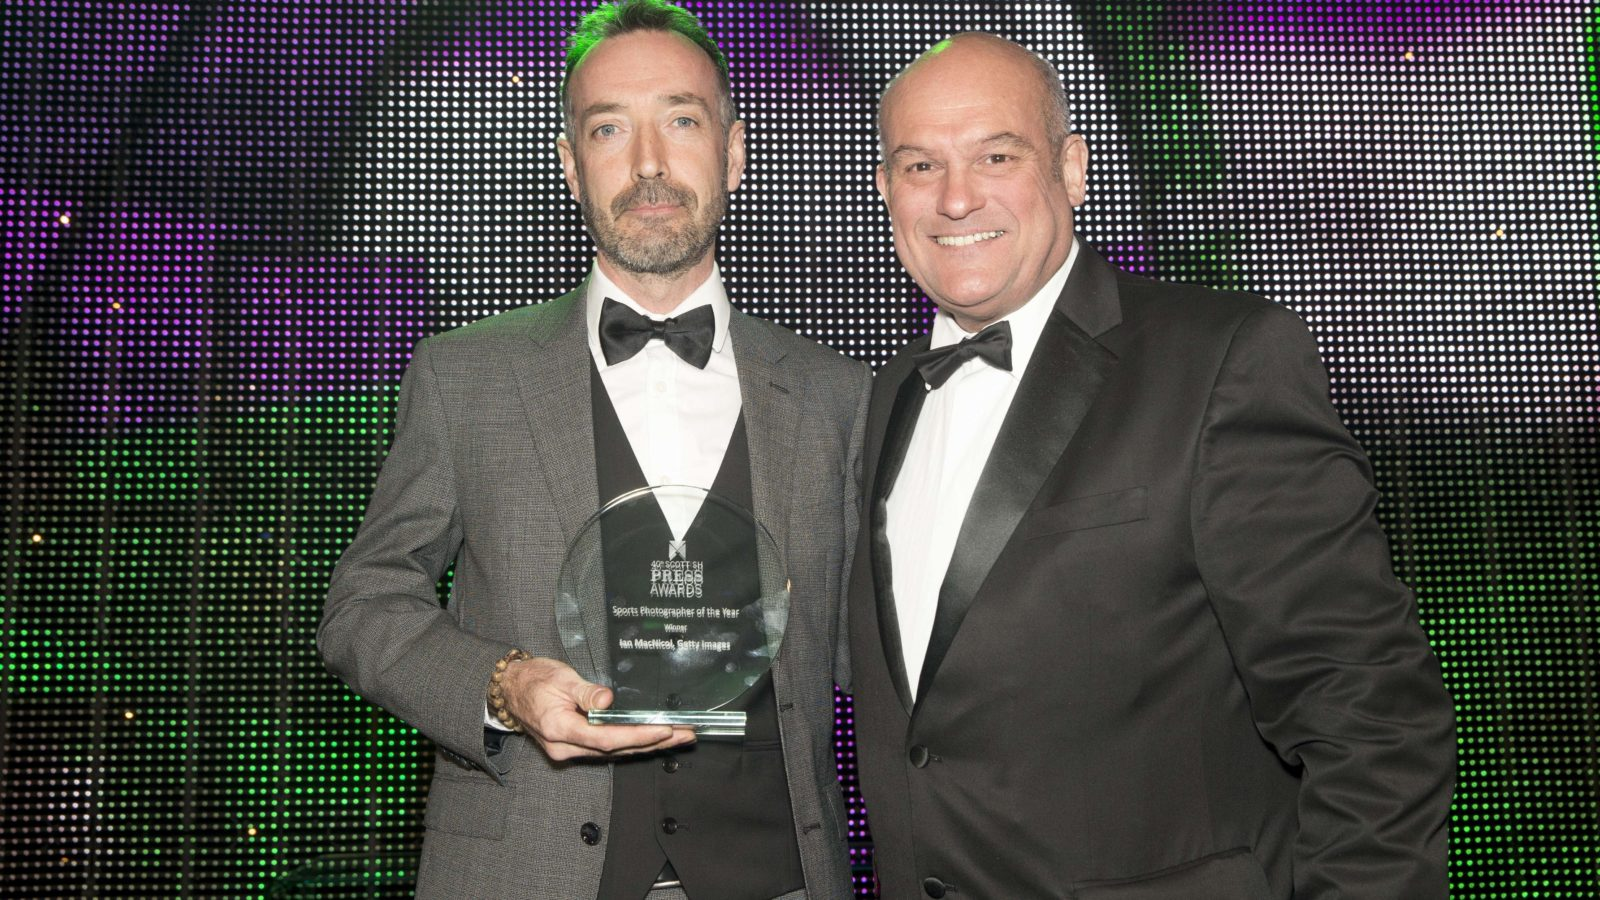 Sports Photographer of the Year Winner Ian MacNicol, Getty Images